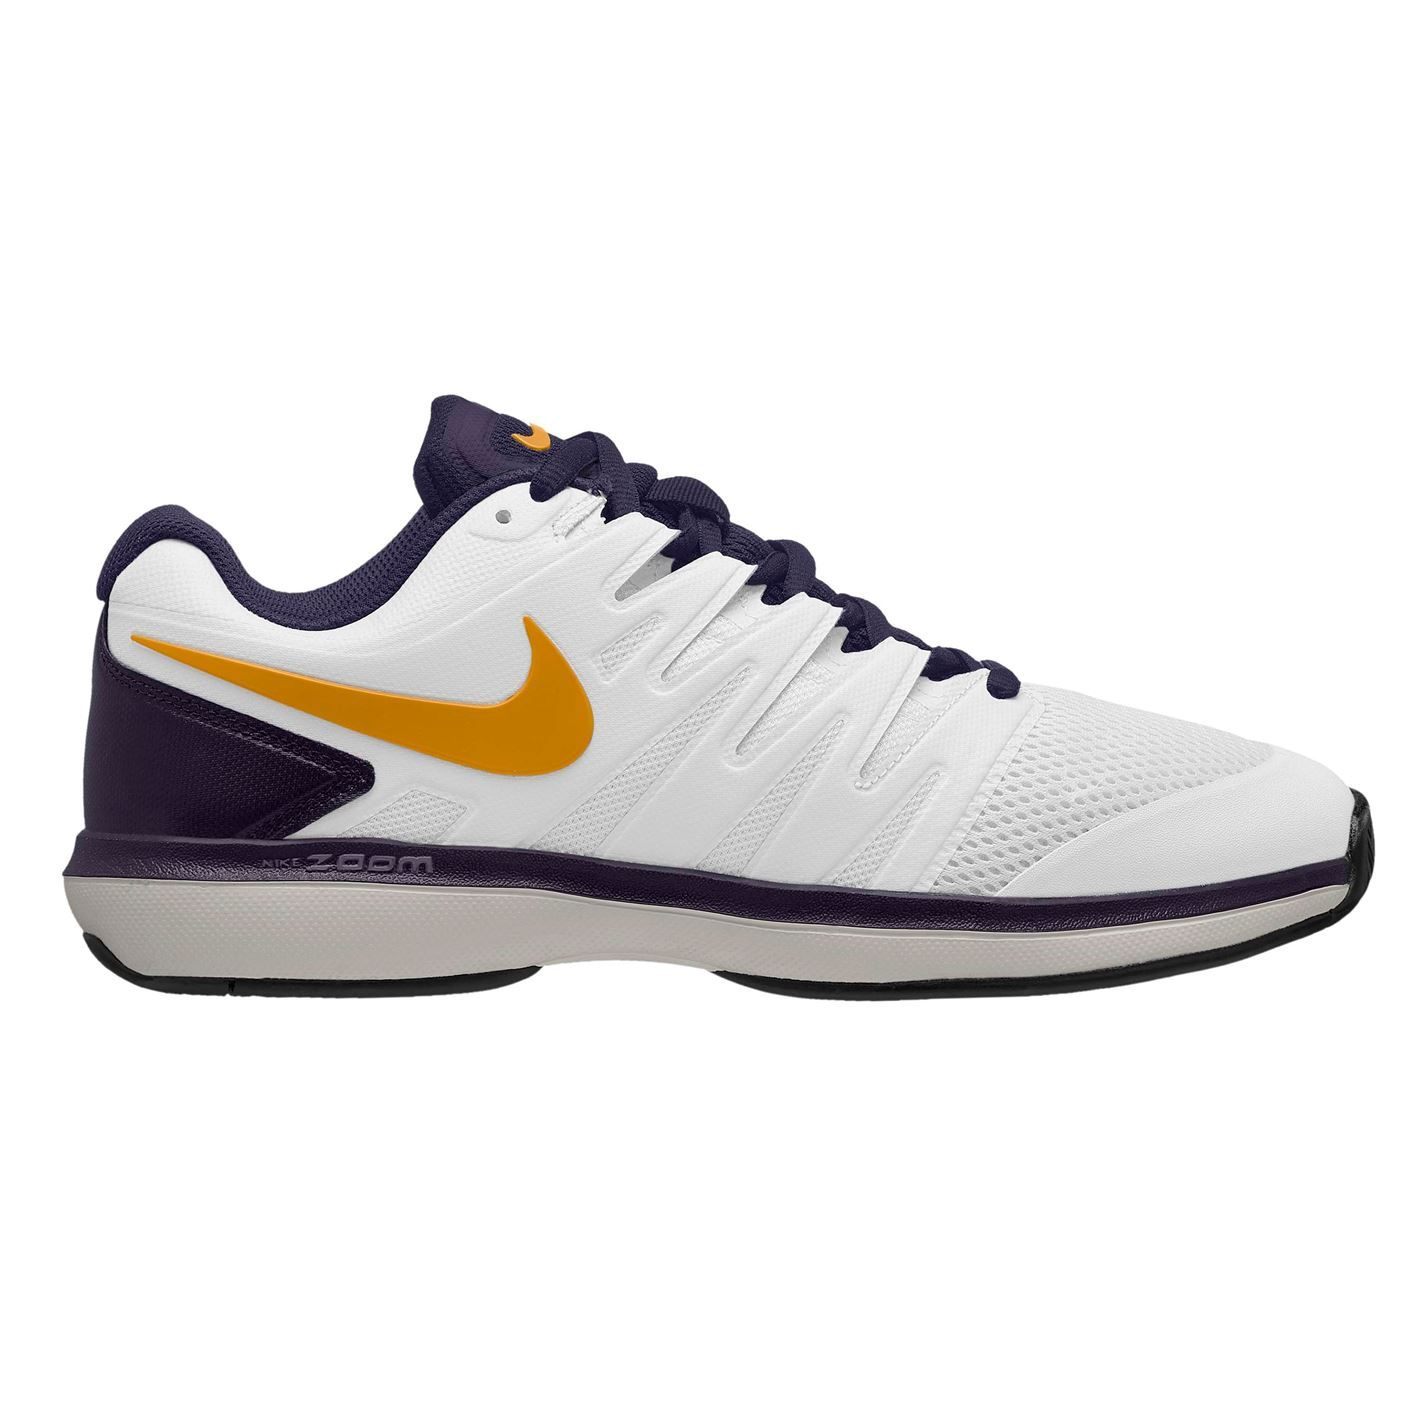 ef3f794e9d2e ... Nike Air Zoom Prestige Tennis Shoes Mens Sports Footwear Trainers  Sneakers ...